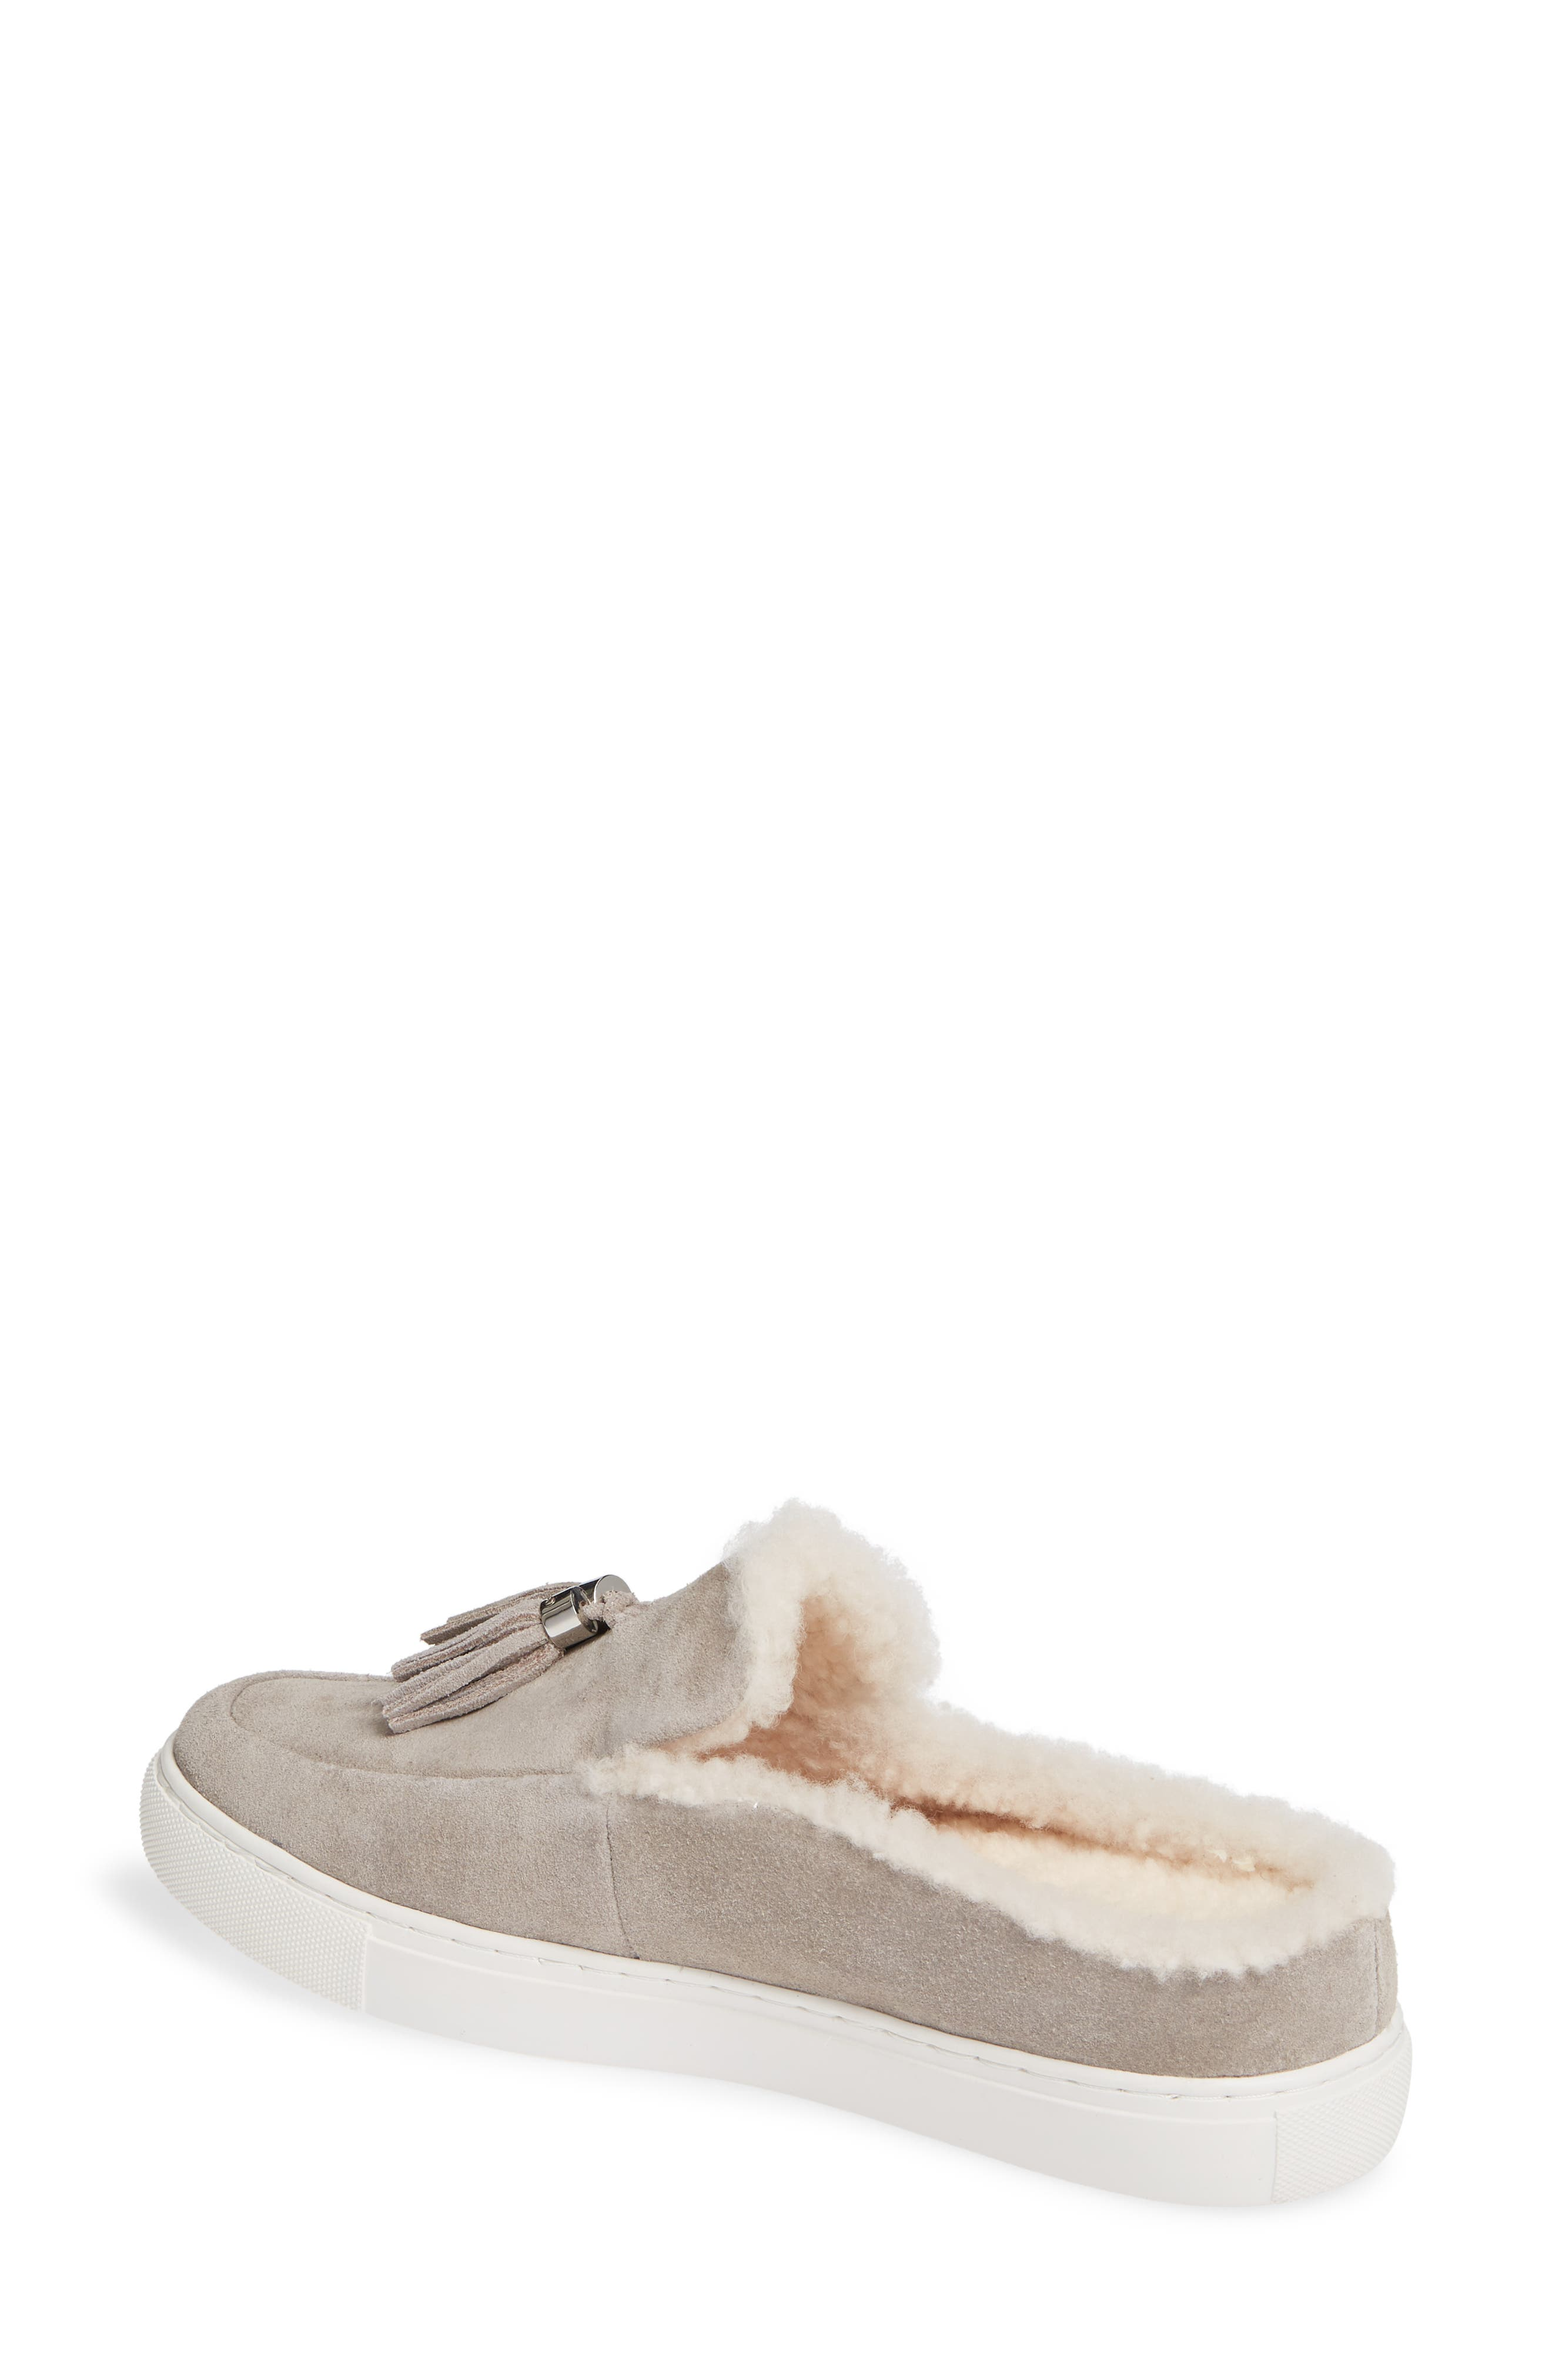 GENTLE SOULS BY KENNETH COLE, Rory Loafer Mule, Alternate thumbnail 2, color, STONE NUBUCK LEATHER